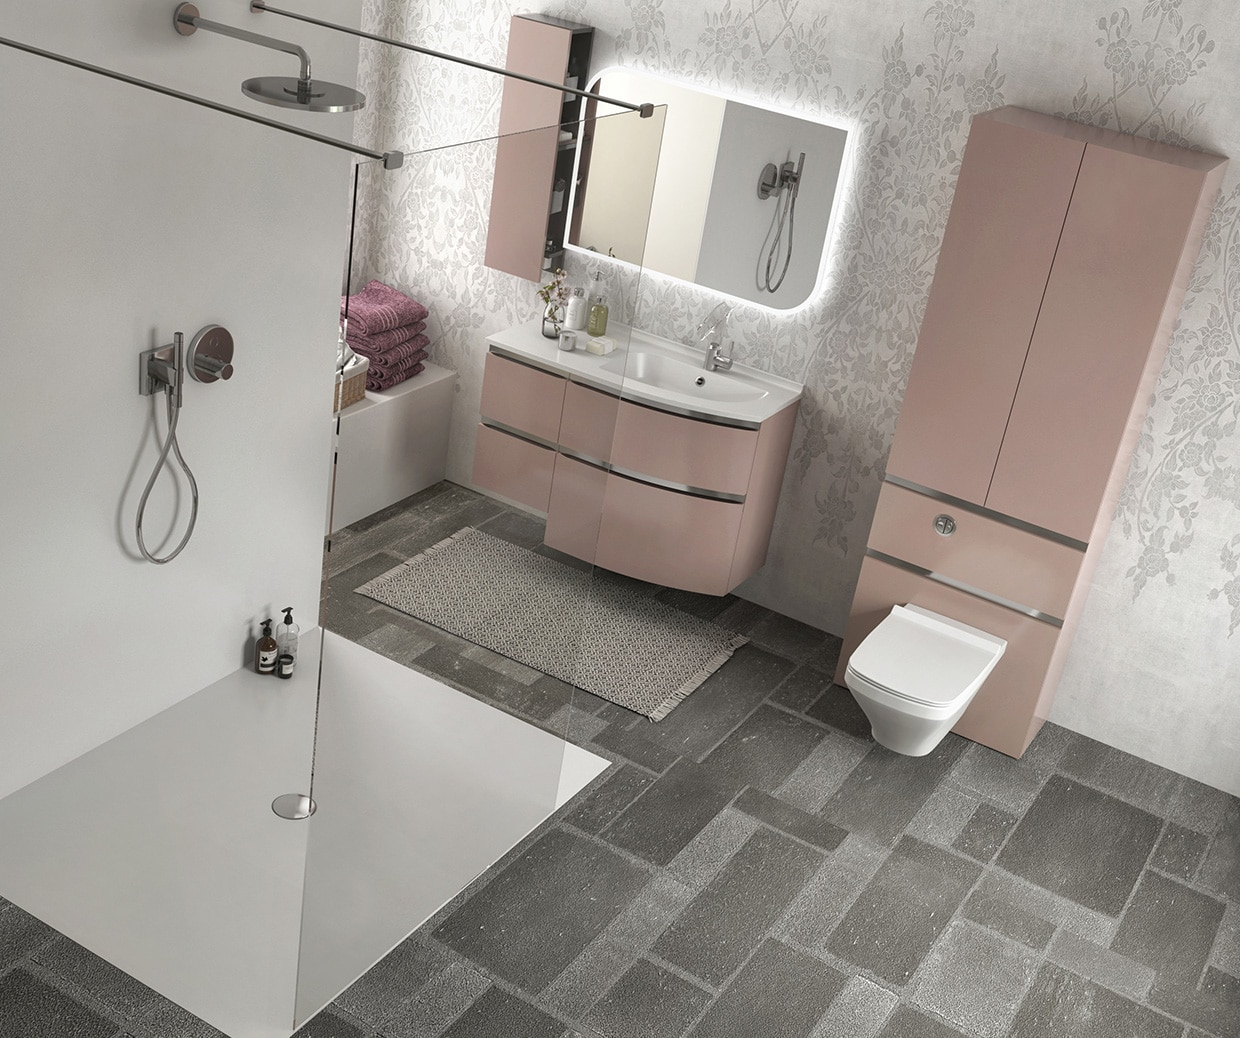 A Co-ordinated Approach to Bathroom Design